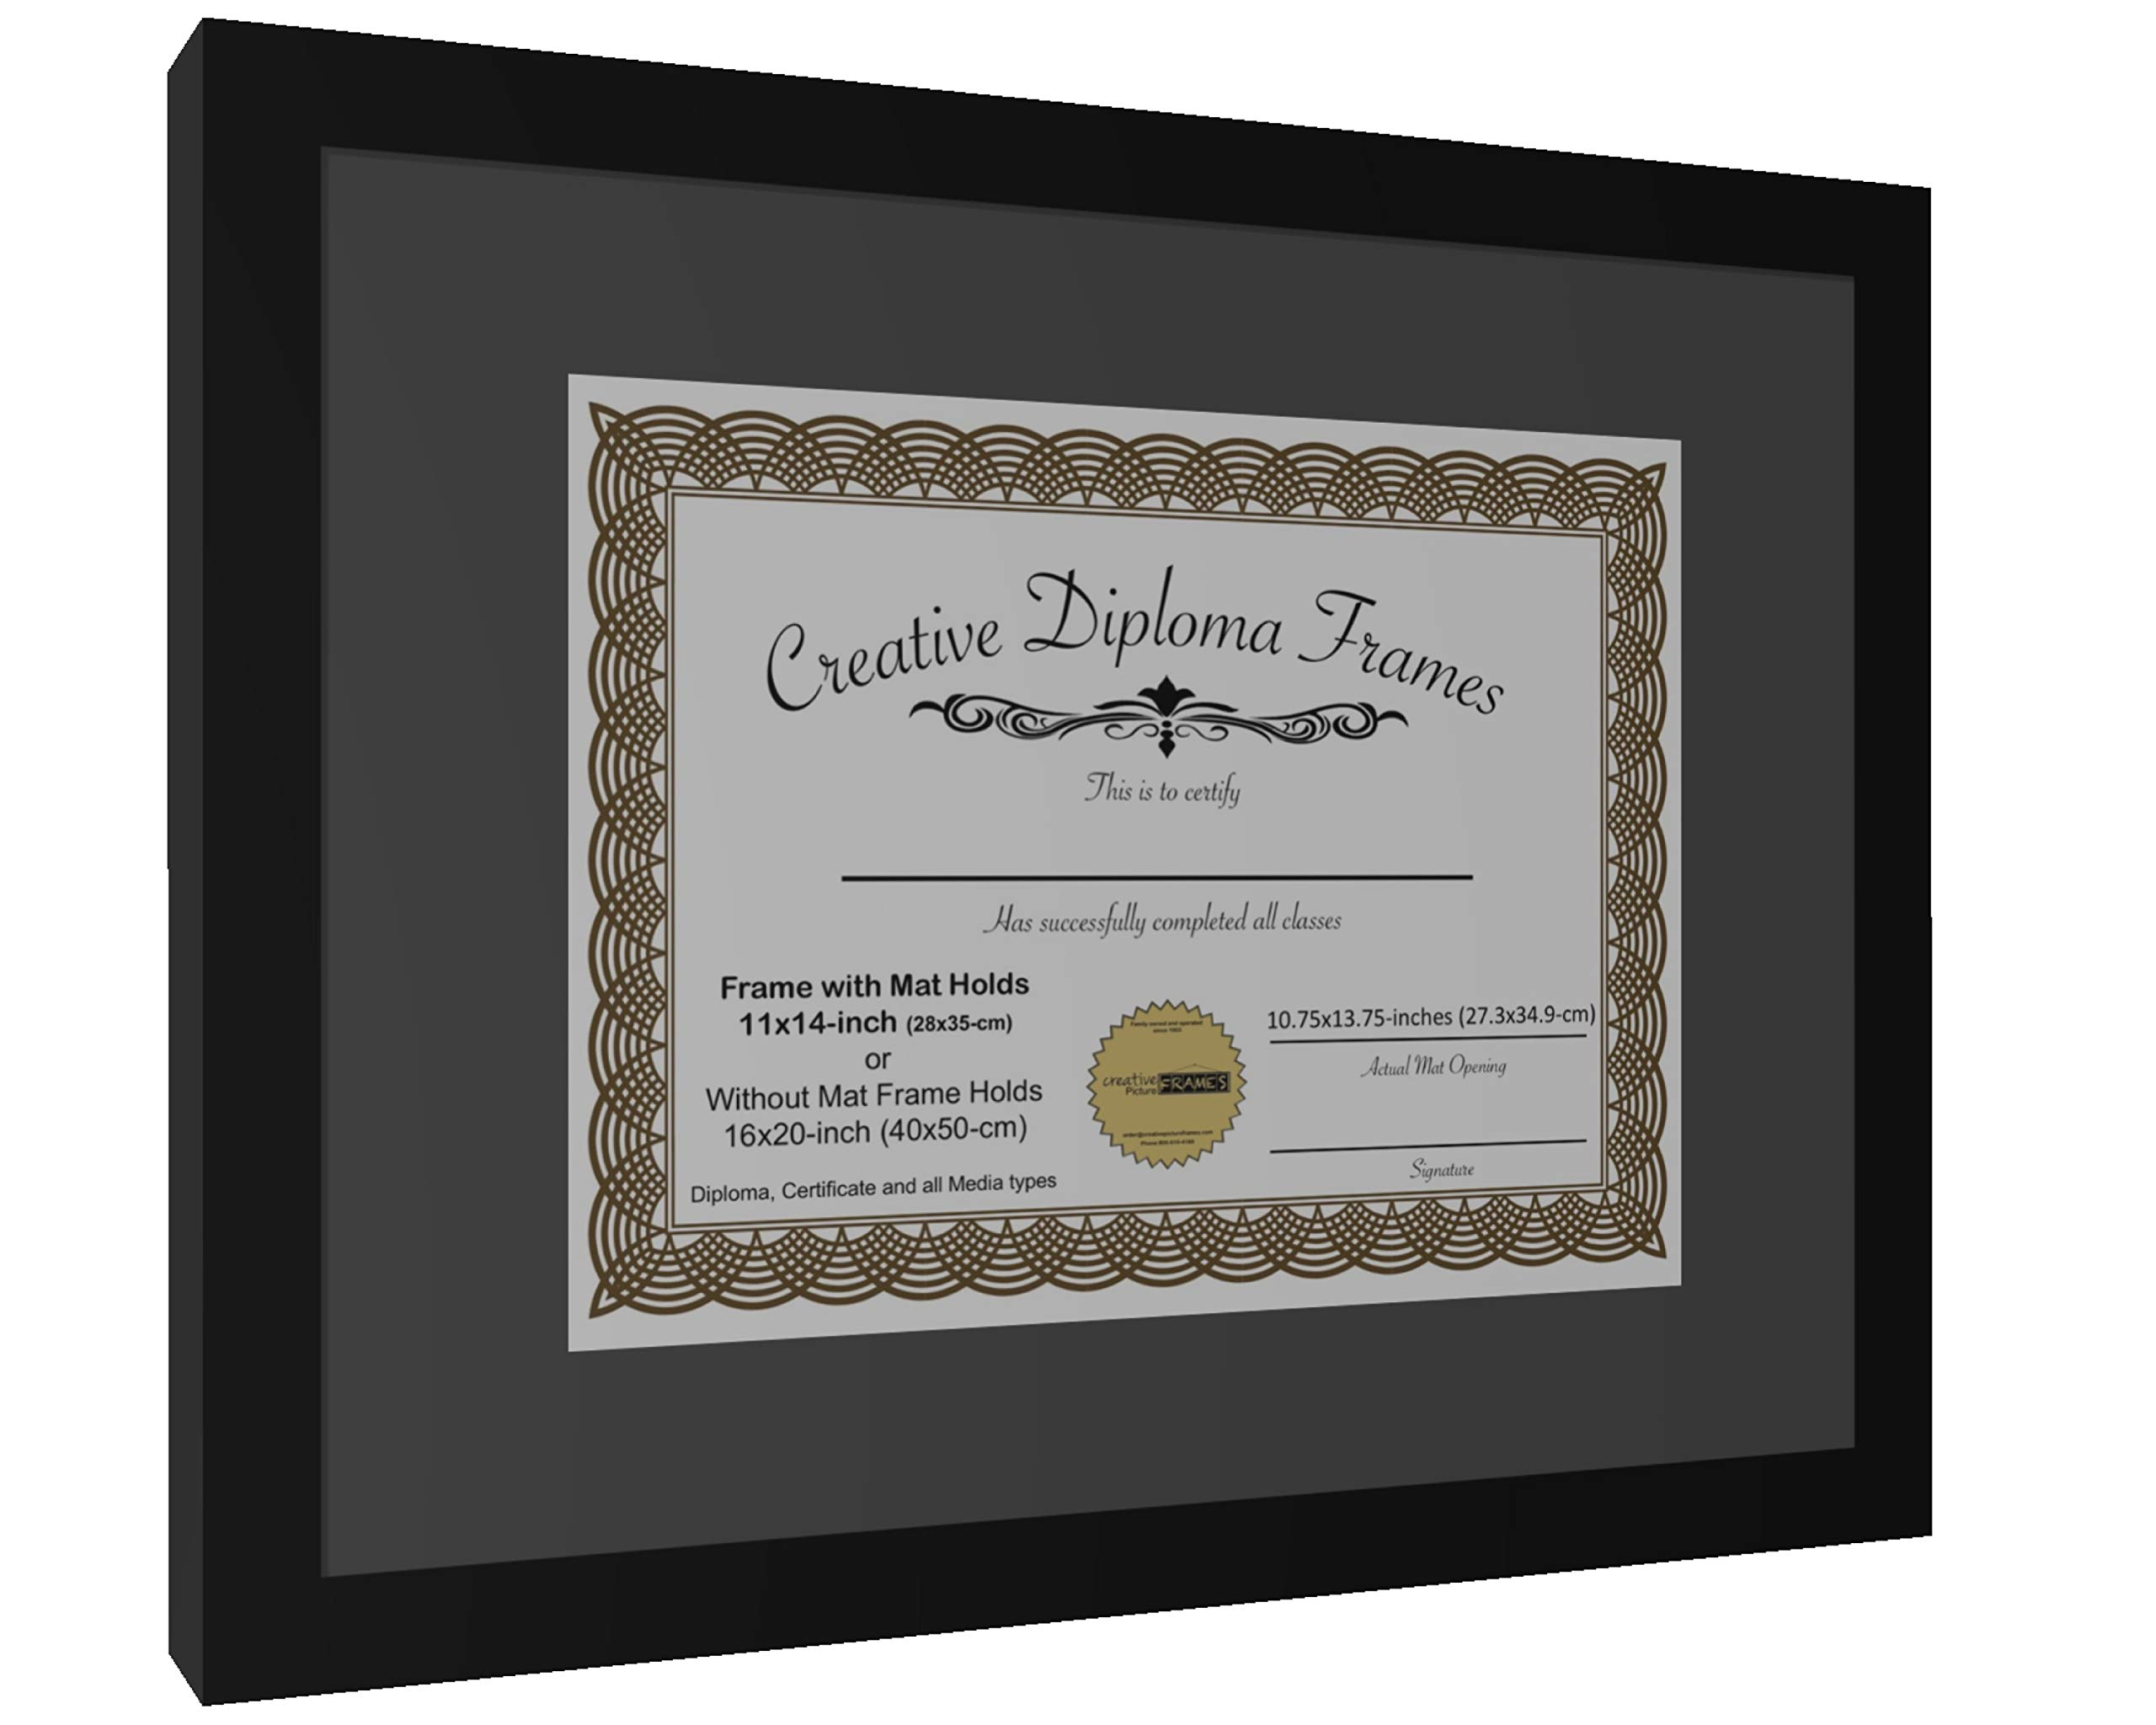 CreativePF [1620bk-b] Satin Black Large Diploma Frame with Black Mat Holds 14x17-inch Documents with Glass and Installed Wall Hanger by Creative Picture Frames (Image #2)